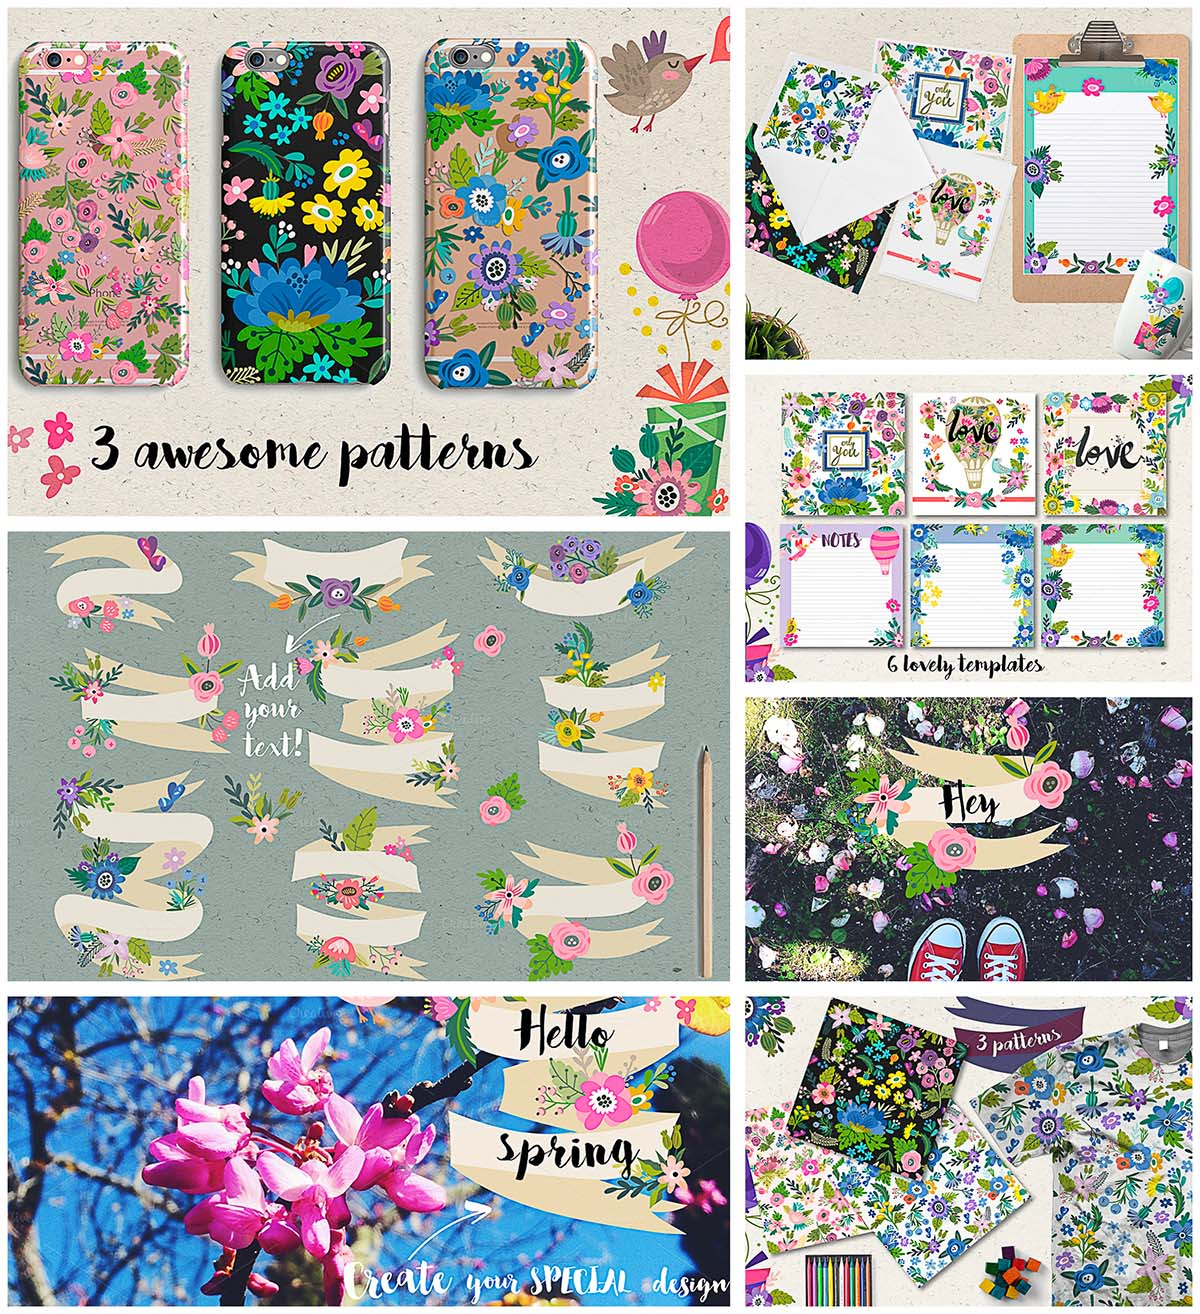 Colorful spring patterns and illustrations set